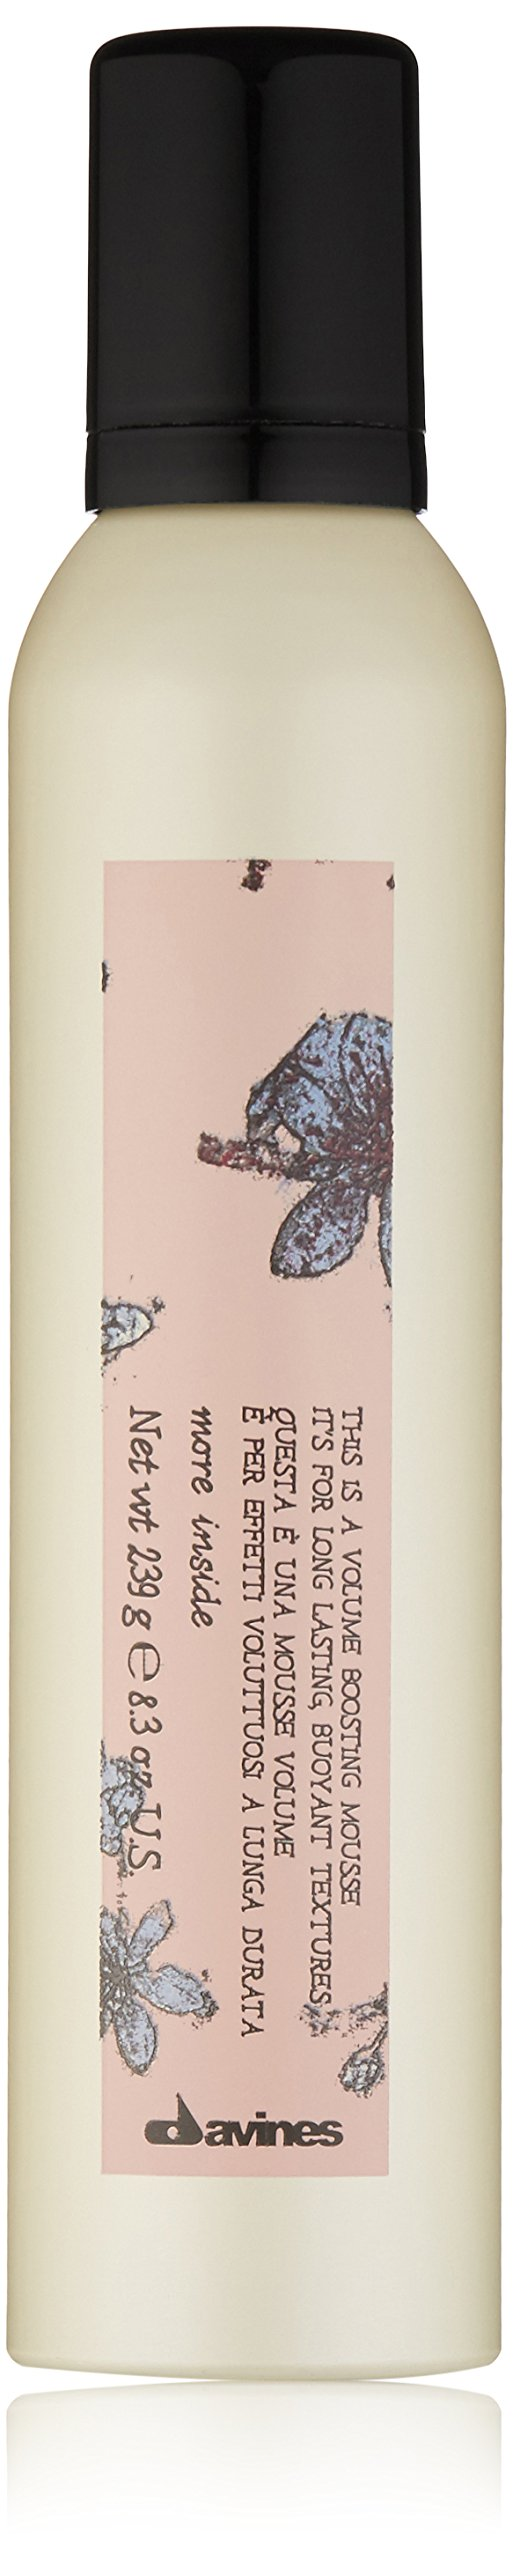 Davines This is a Volume Boosting Mousse,8.3 oz by Davines